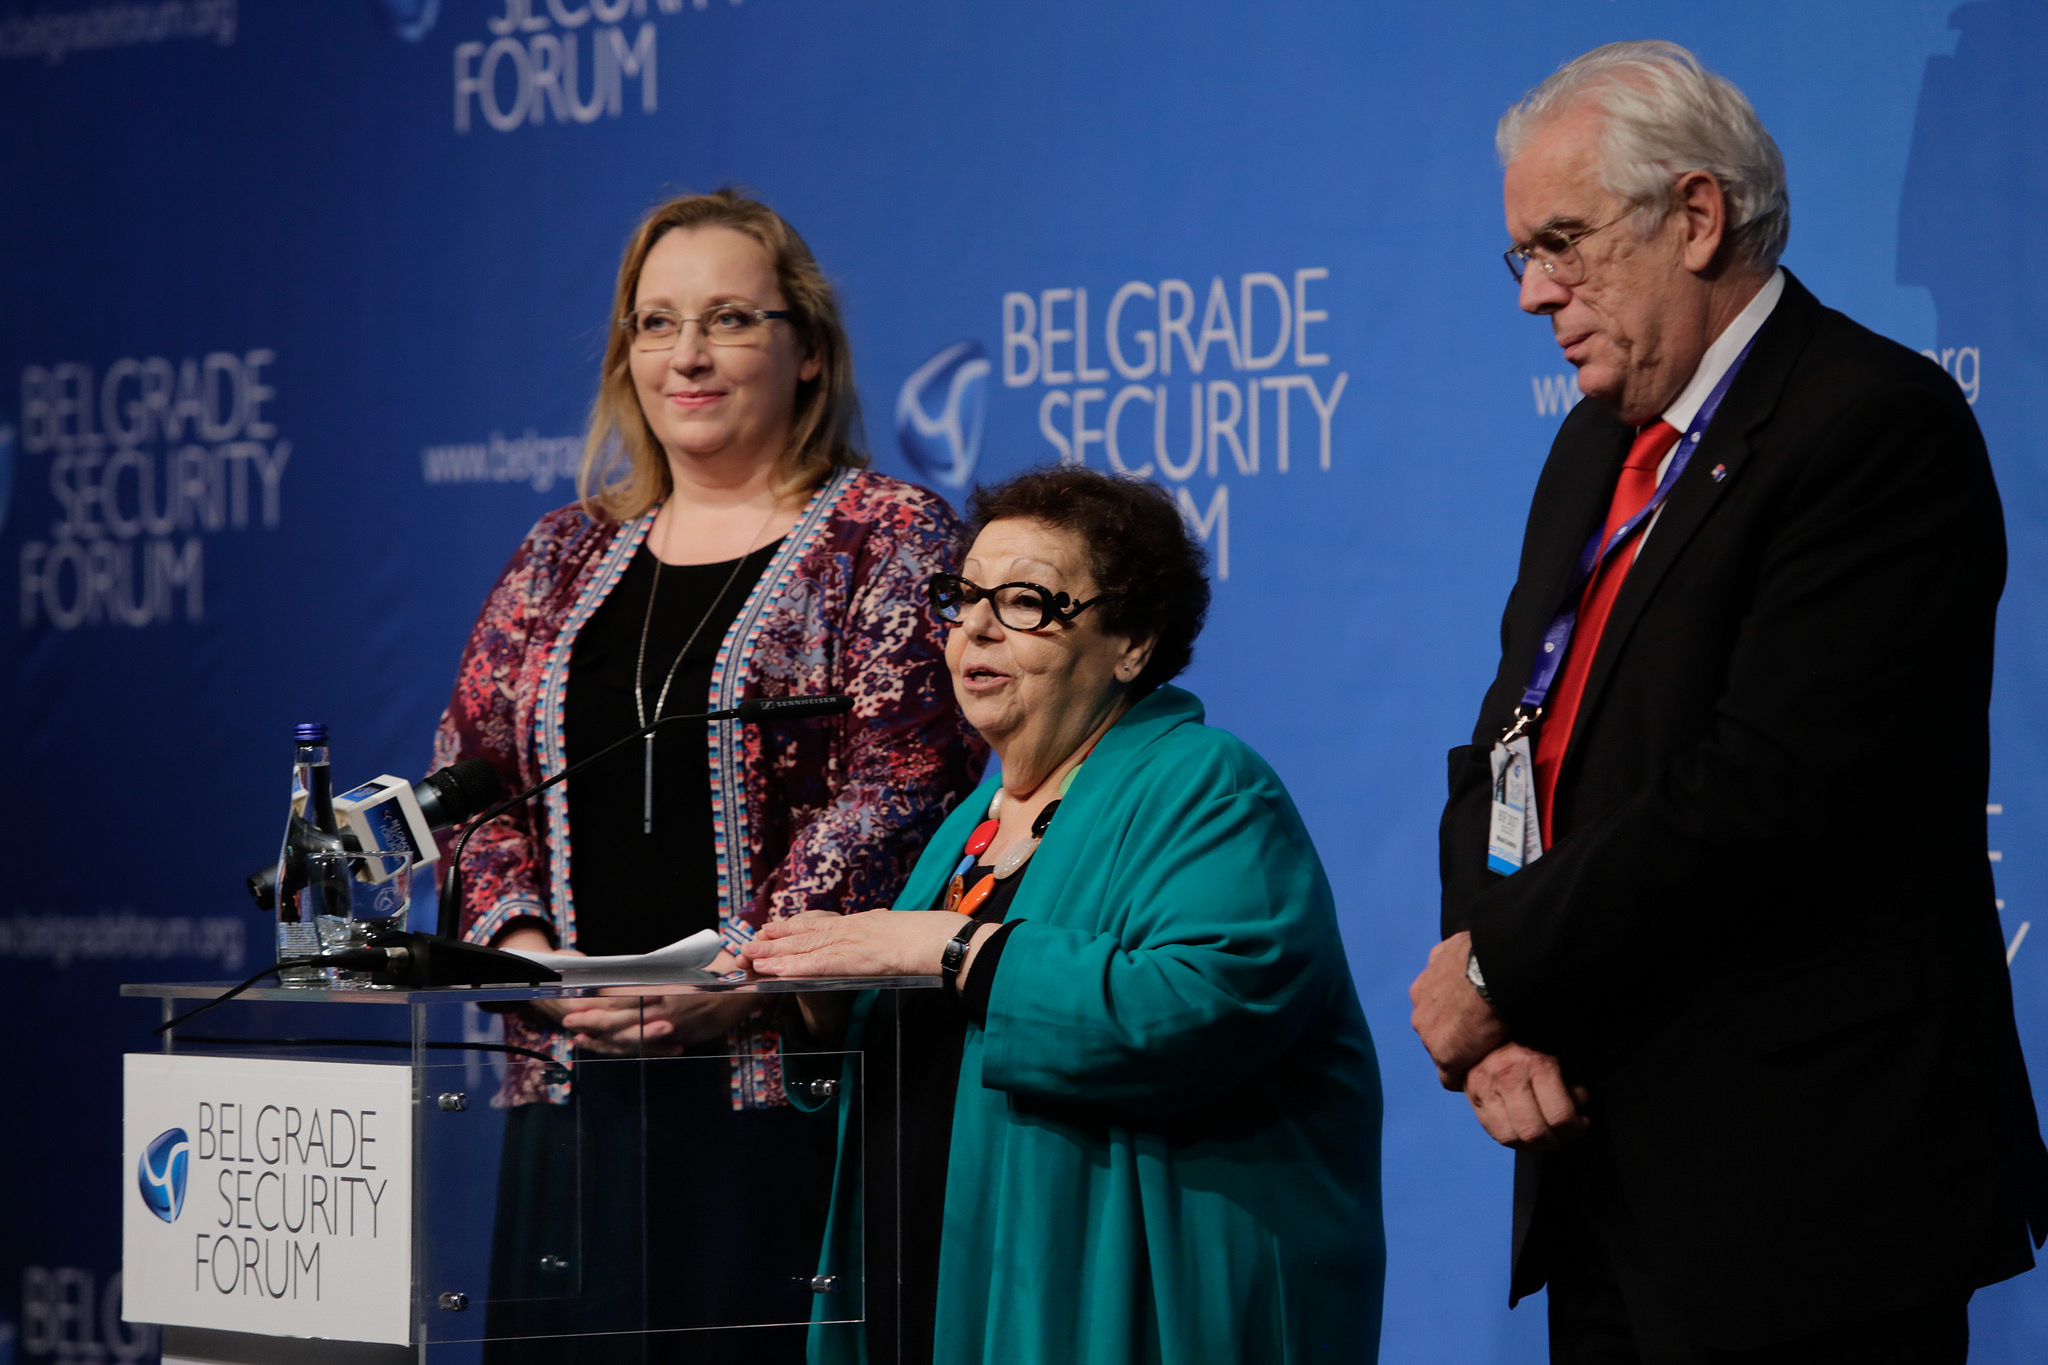 BSF calls for rebuilding rule of law as a cornerstone of stability in Europe